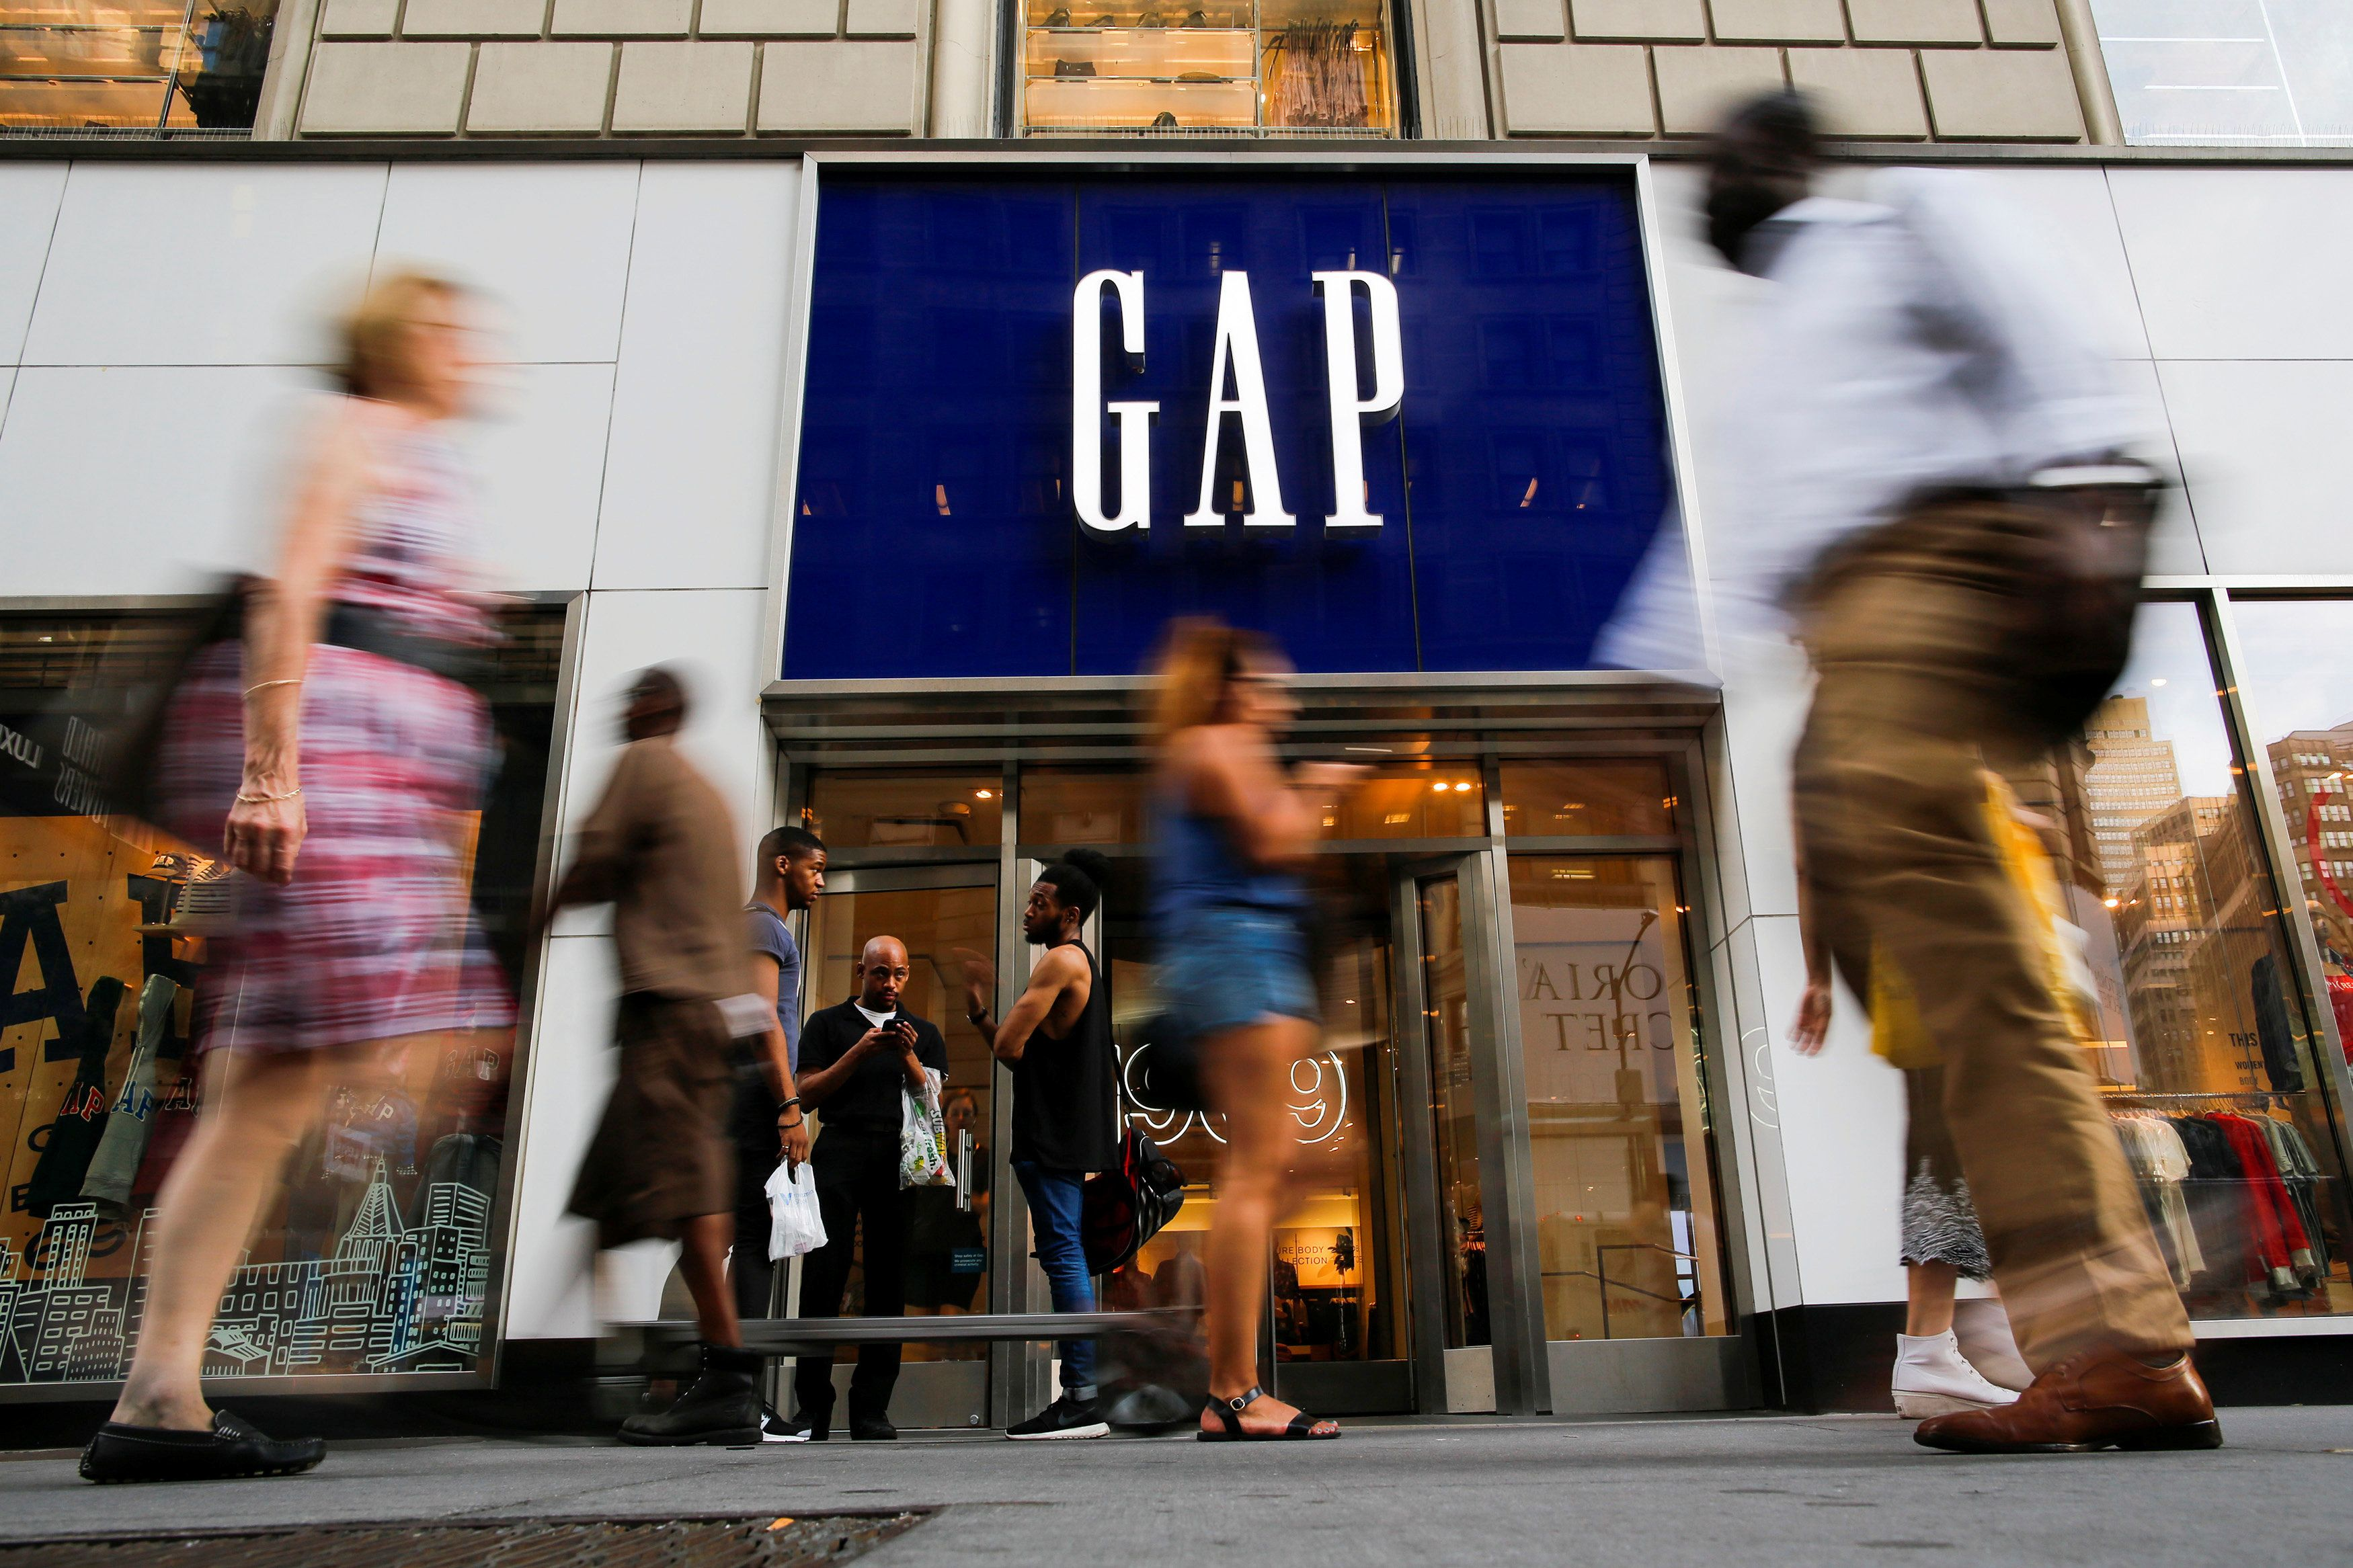 A study involving Gap stores in the San Francisco and Chicago areas found that offering employees steady hours boosted produc